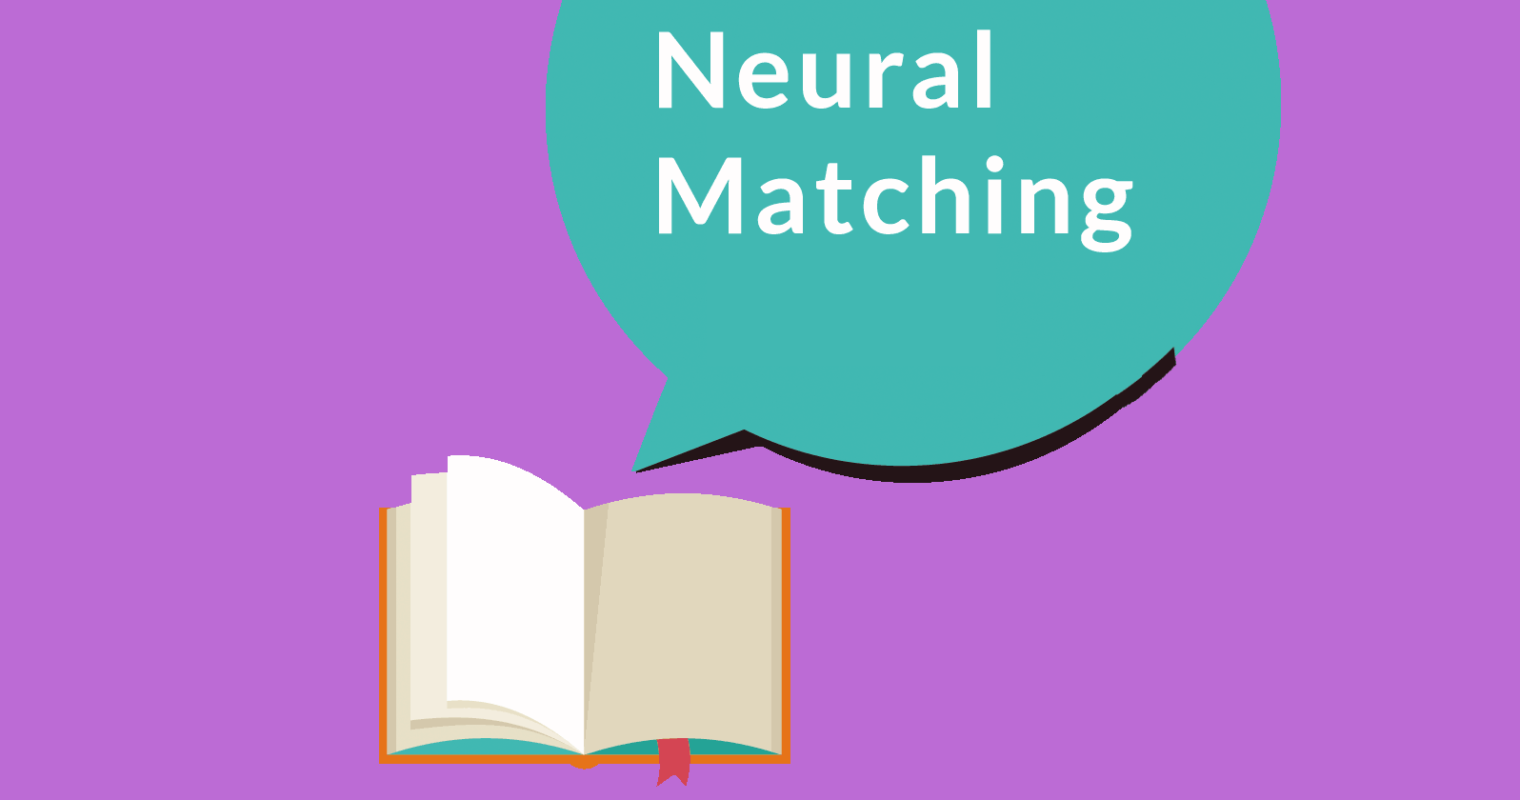 What is Google's Neural Matching?